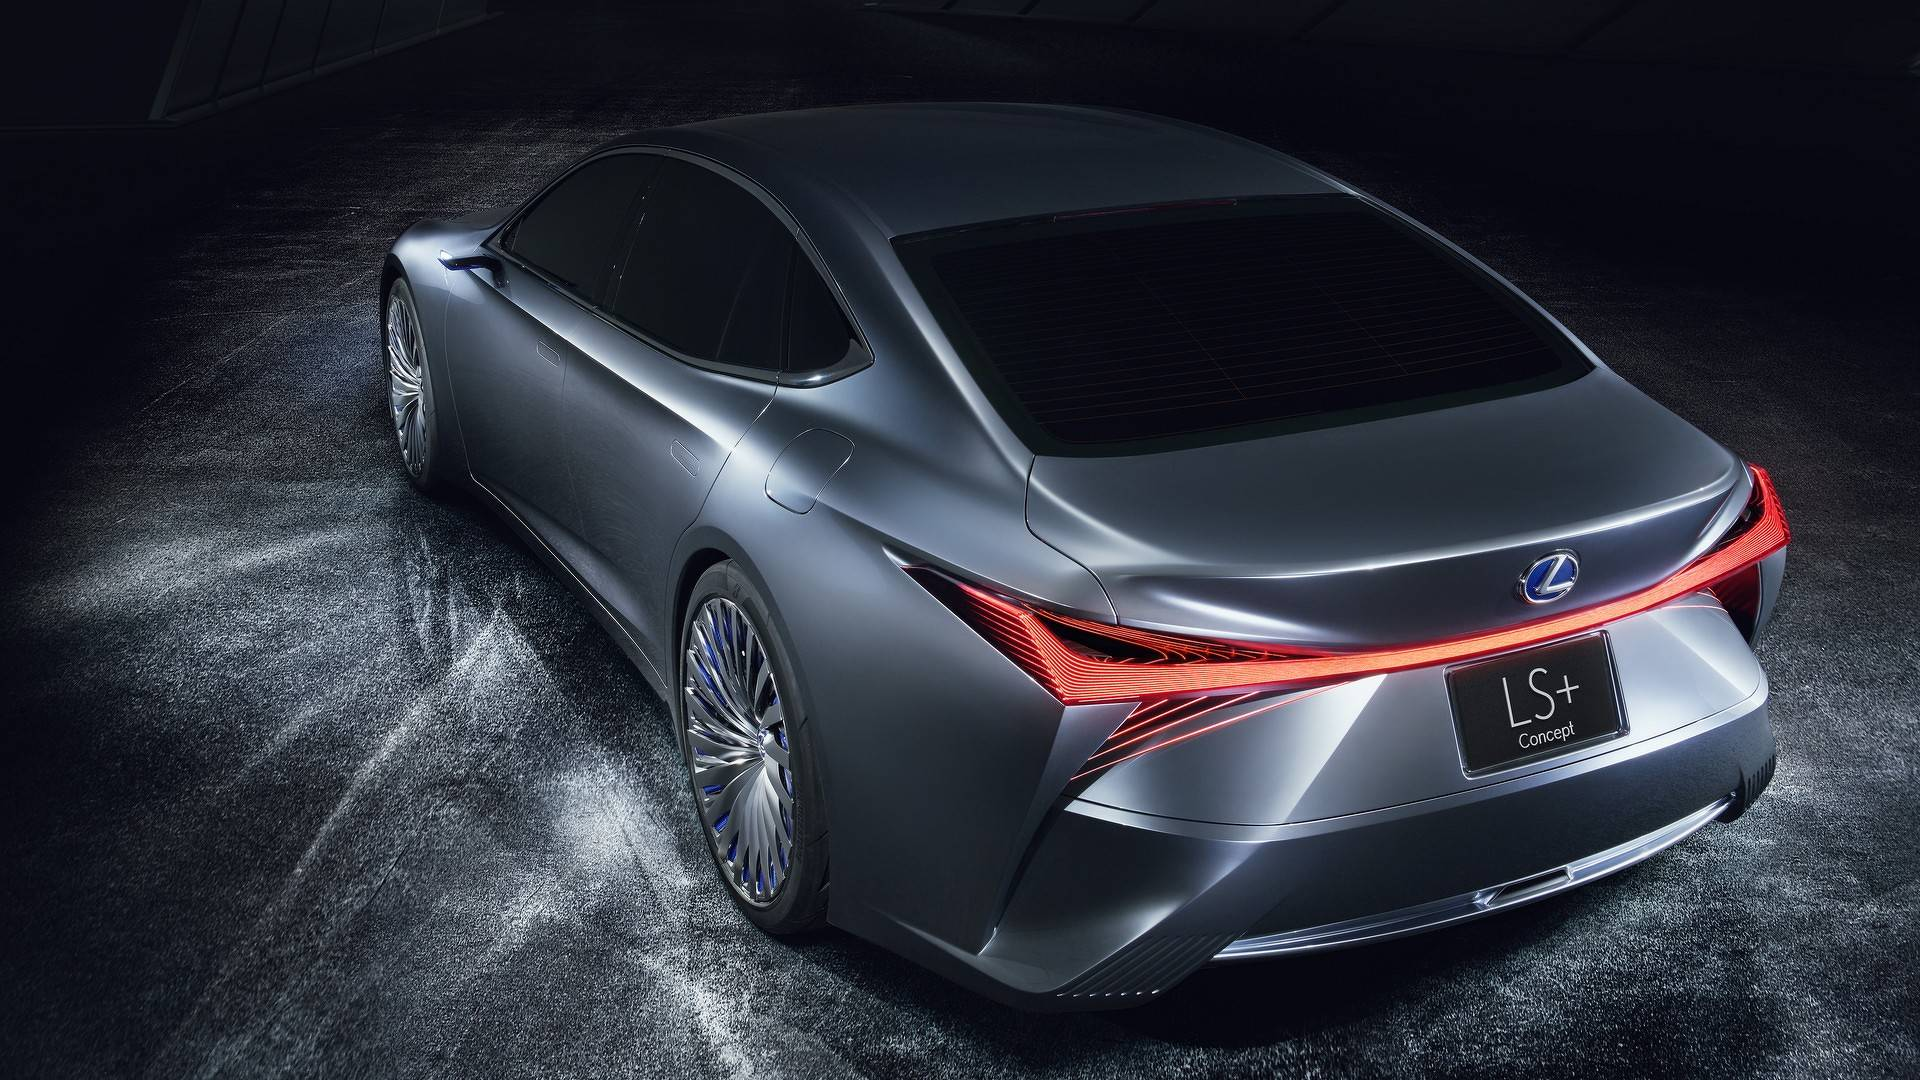 https://s1.cdn.autoevolution.com/images/news/gallery/lexus-f-brand-now-takes-electrification-seriously_4.jpg